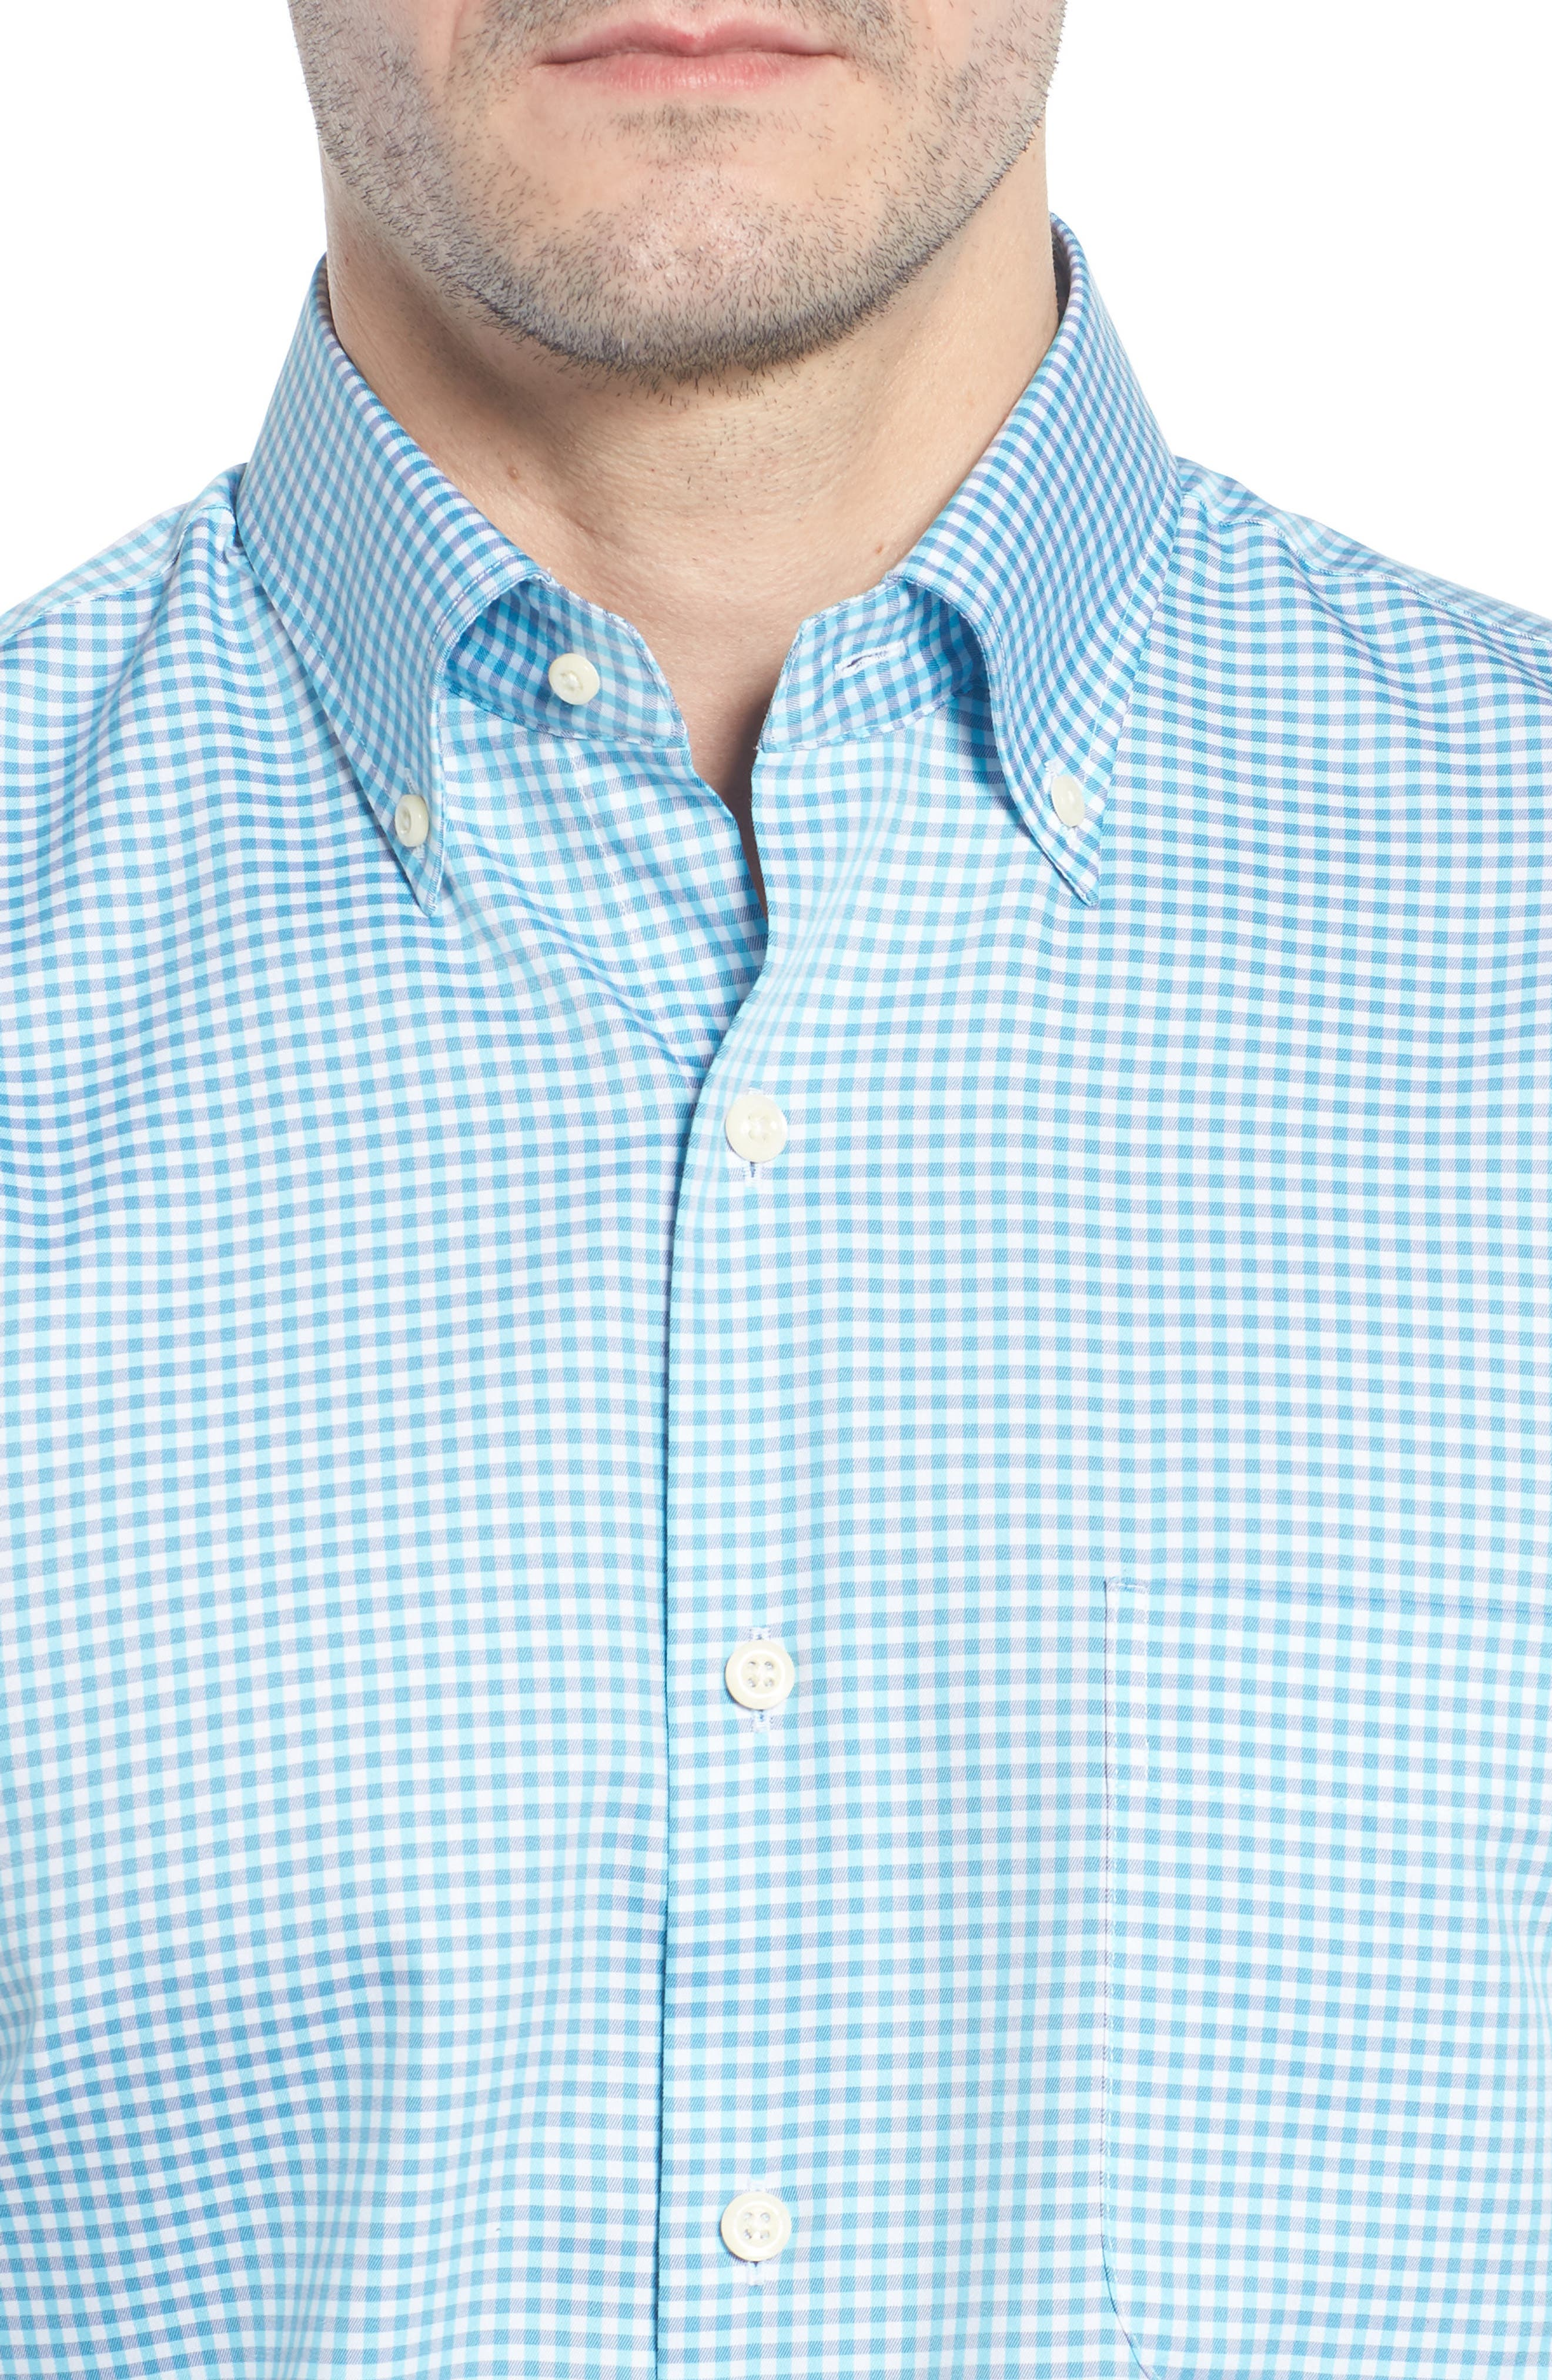 Crown Classic Fit Microcheck Sport Shirt,                             Alternate thumbnail 2, color,                             Tahoe Blue